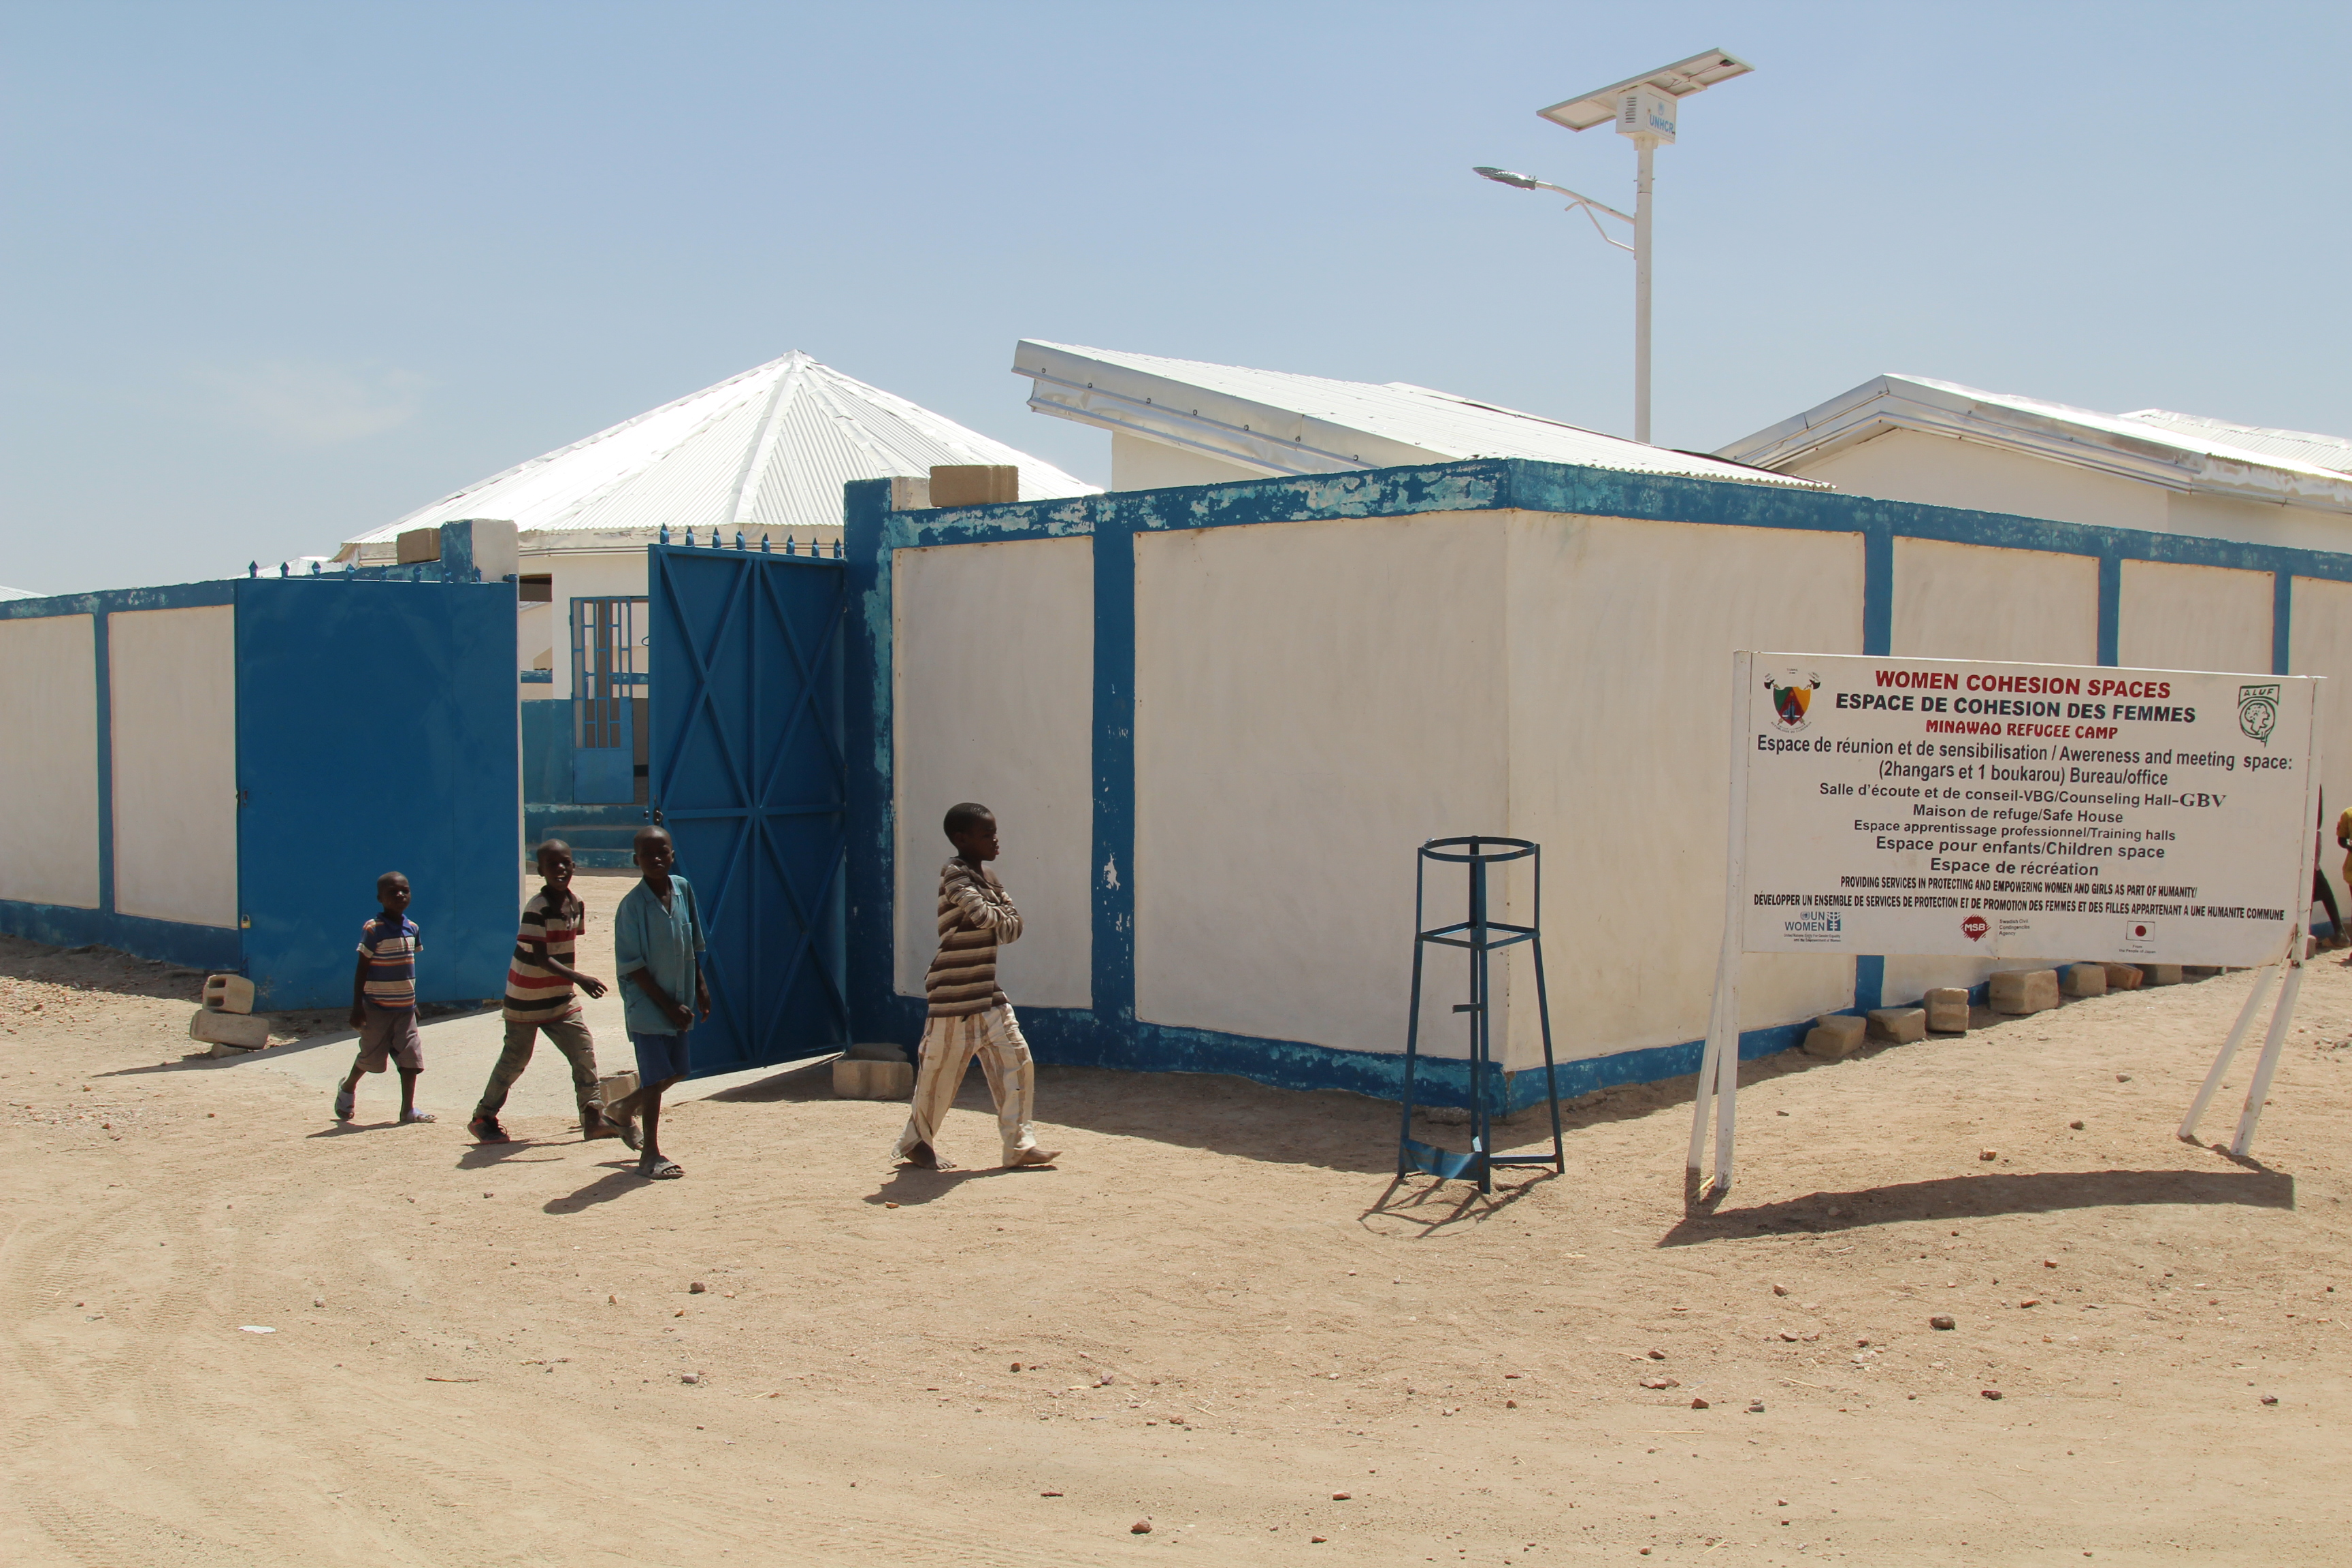 Women cohesion space in Minawao refugee camp to hot beneficiaries/trainees of the SCE programme